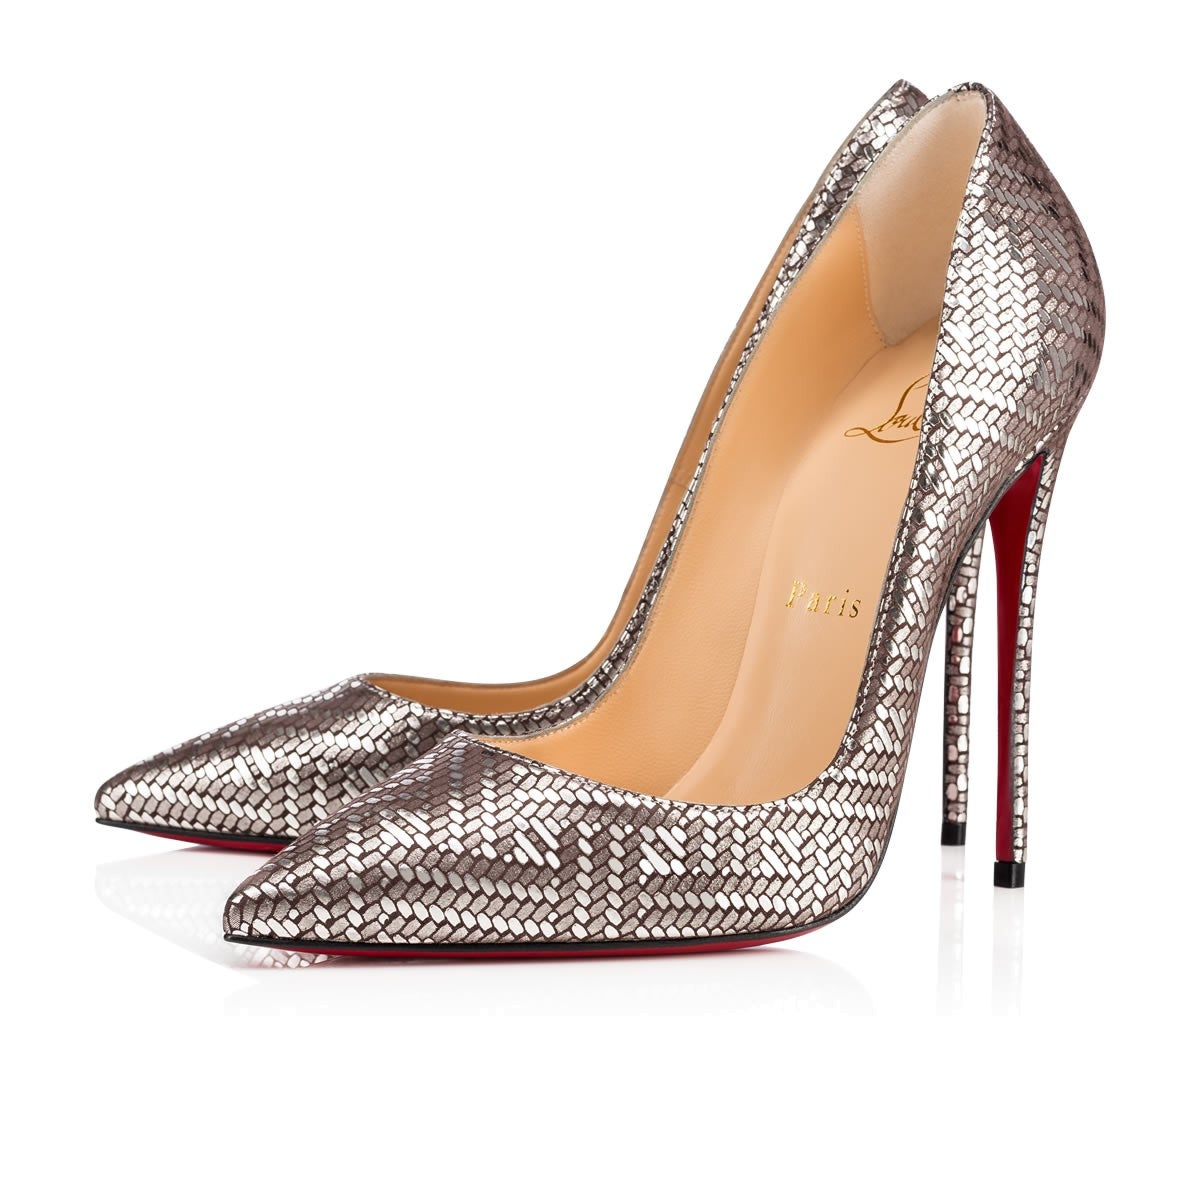 fc83f047d5c3 Christian Louboutin New Leather Silver Geometric So Kate Heels Pumps in Box  at 1stdibs